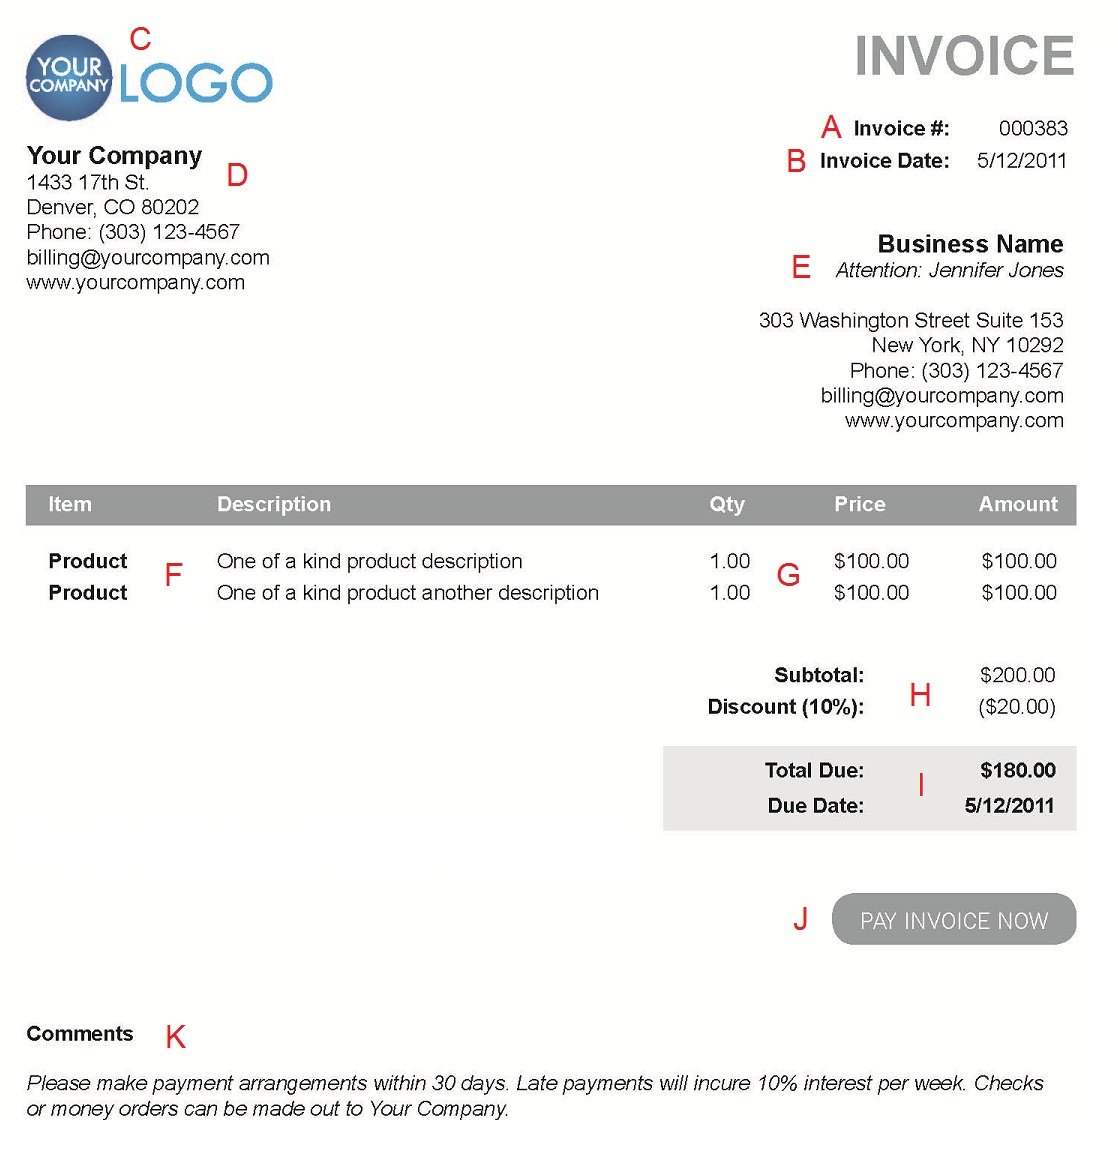 Pigbrotherus  Personable The  Different Sections Of An Electronic Payment Invoice With Exquisite A  With Comely Invoice Purchase Also Copy Invoice In Addition Invoice Discounting Definition And Invoice And Accounting Software For Small Business As Well As Invoice Template Basic Additionally Form Invoice Excel From Paysimplecom With Pigbrotherus  Exquisite The  Different Sections Of An Electronic Payment Invoice With Comely A  And Personable Invoice Purchase Also Copy Invoice In Addition Invoice Discounting Definition From Paysimplecom